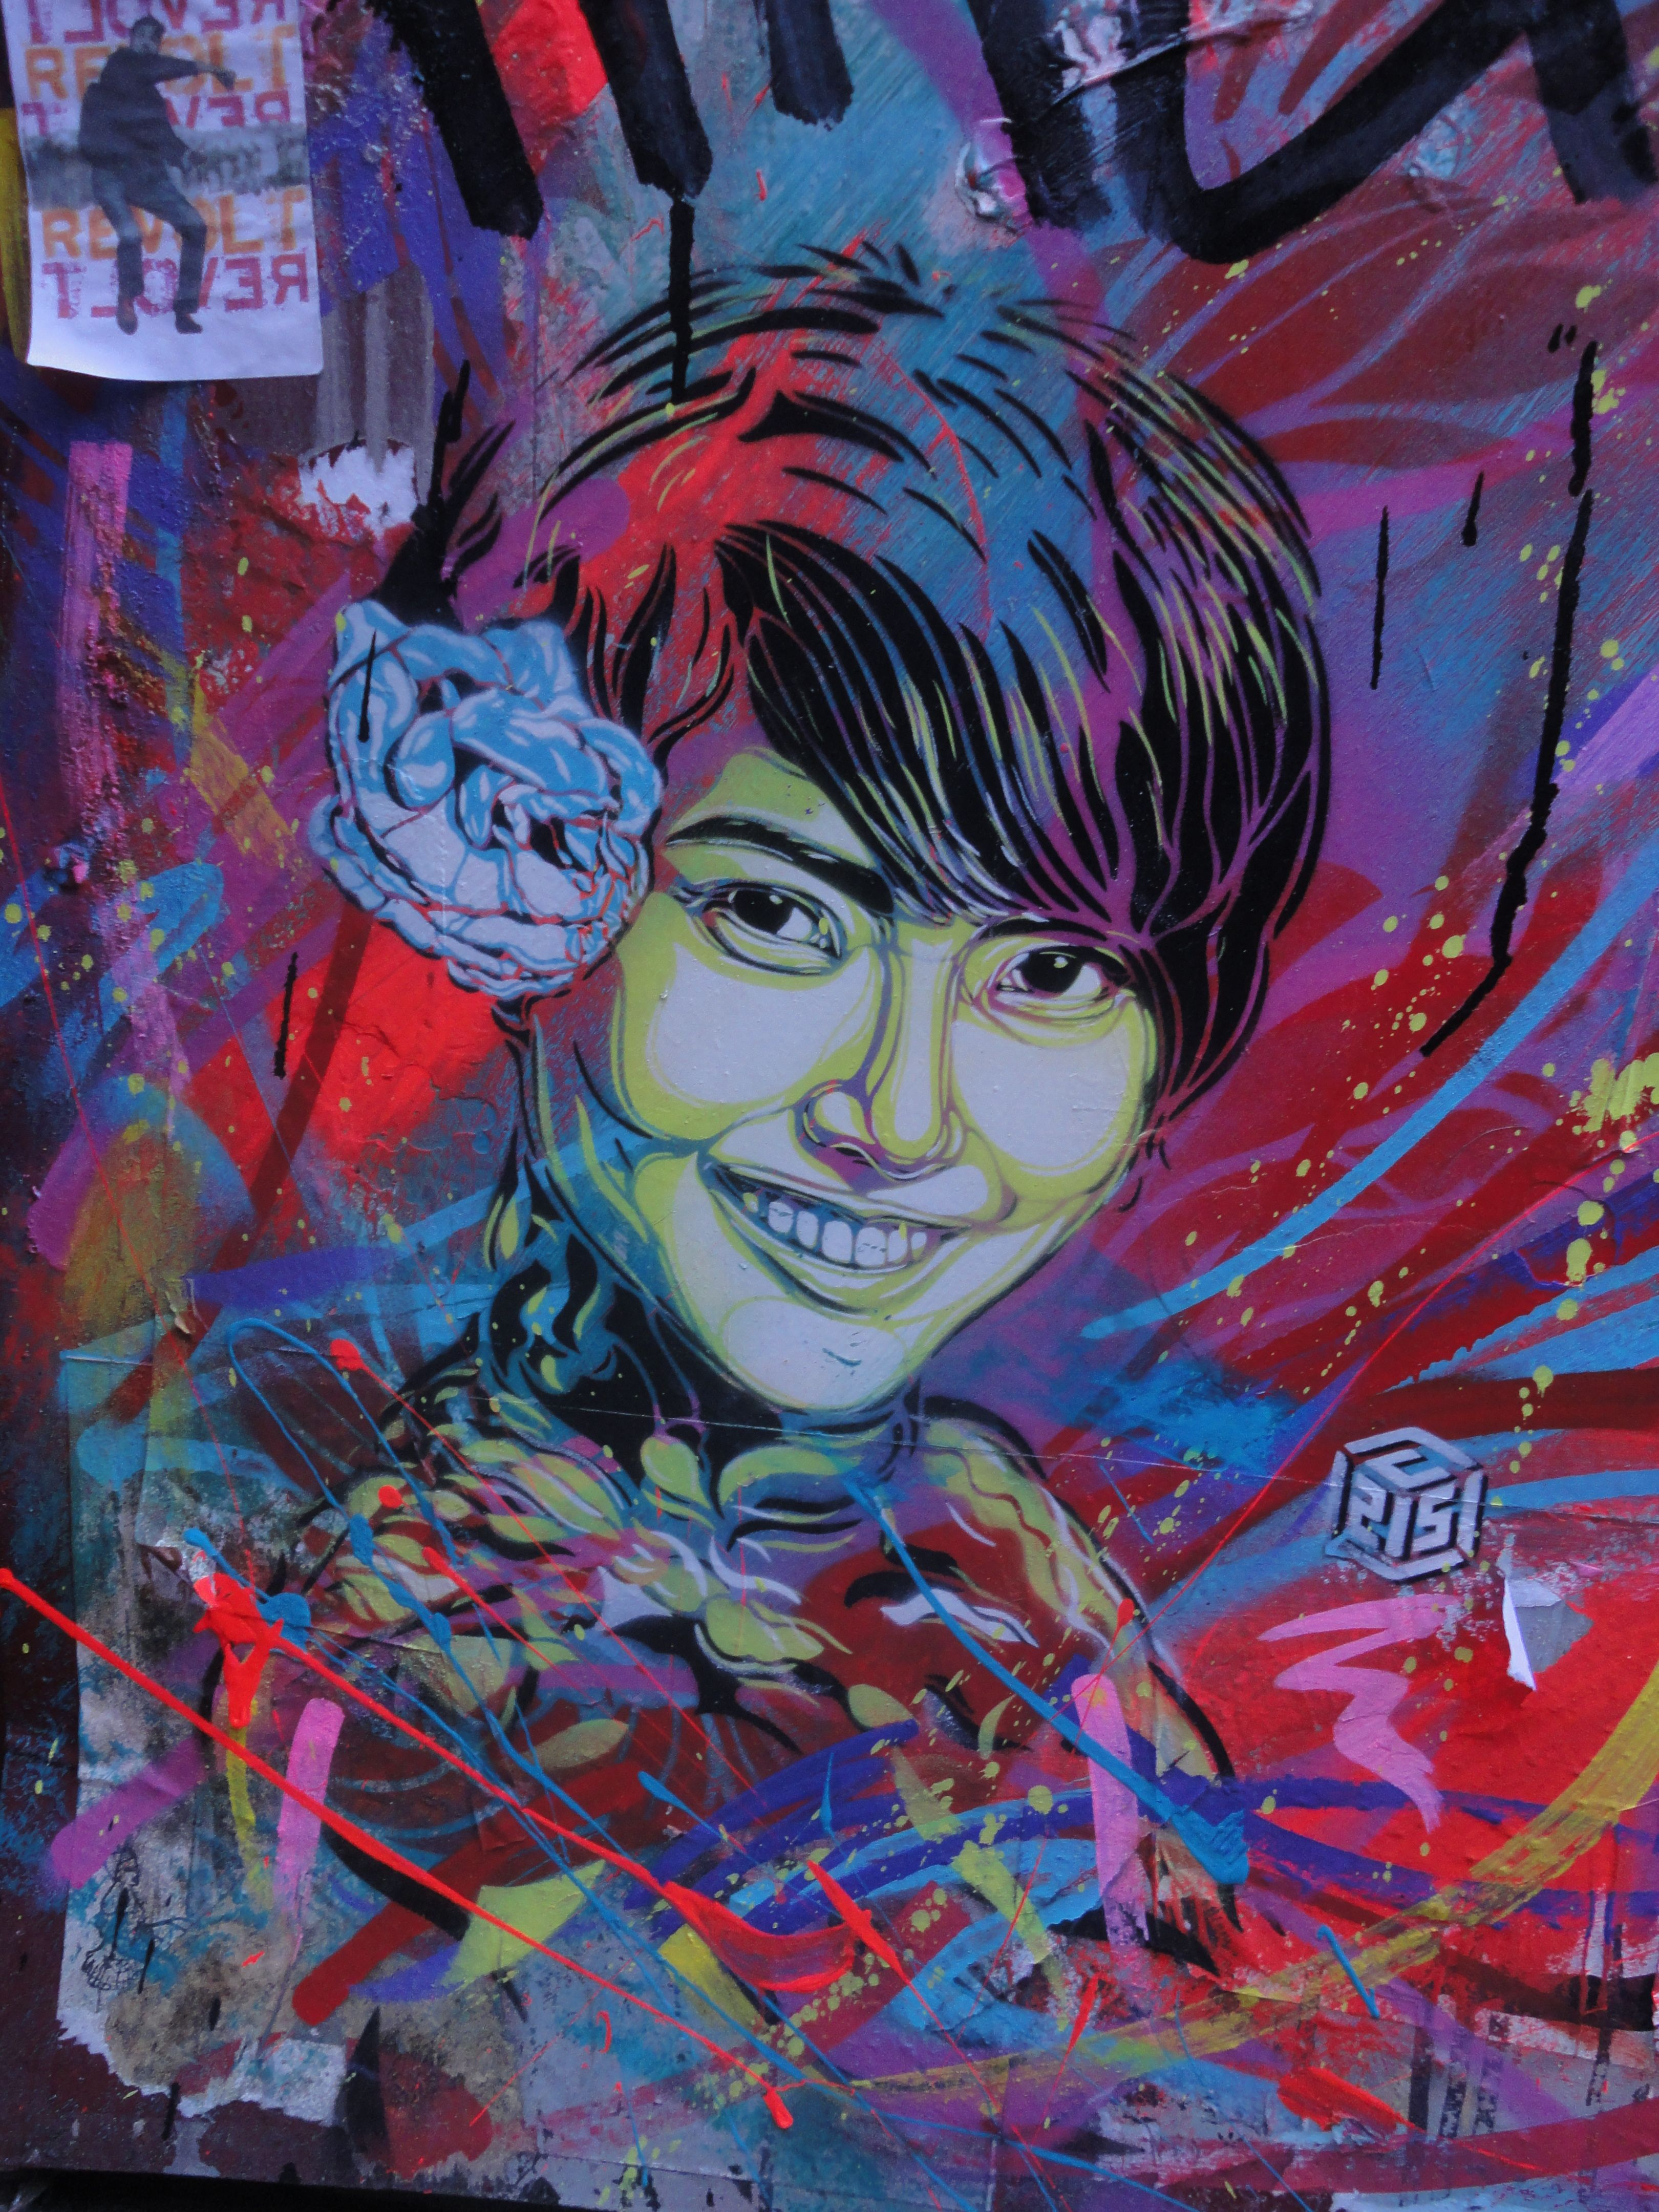 C215 in London - Picture by Harun Osmanovic